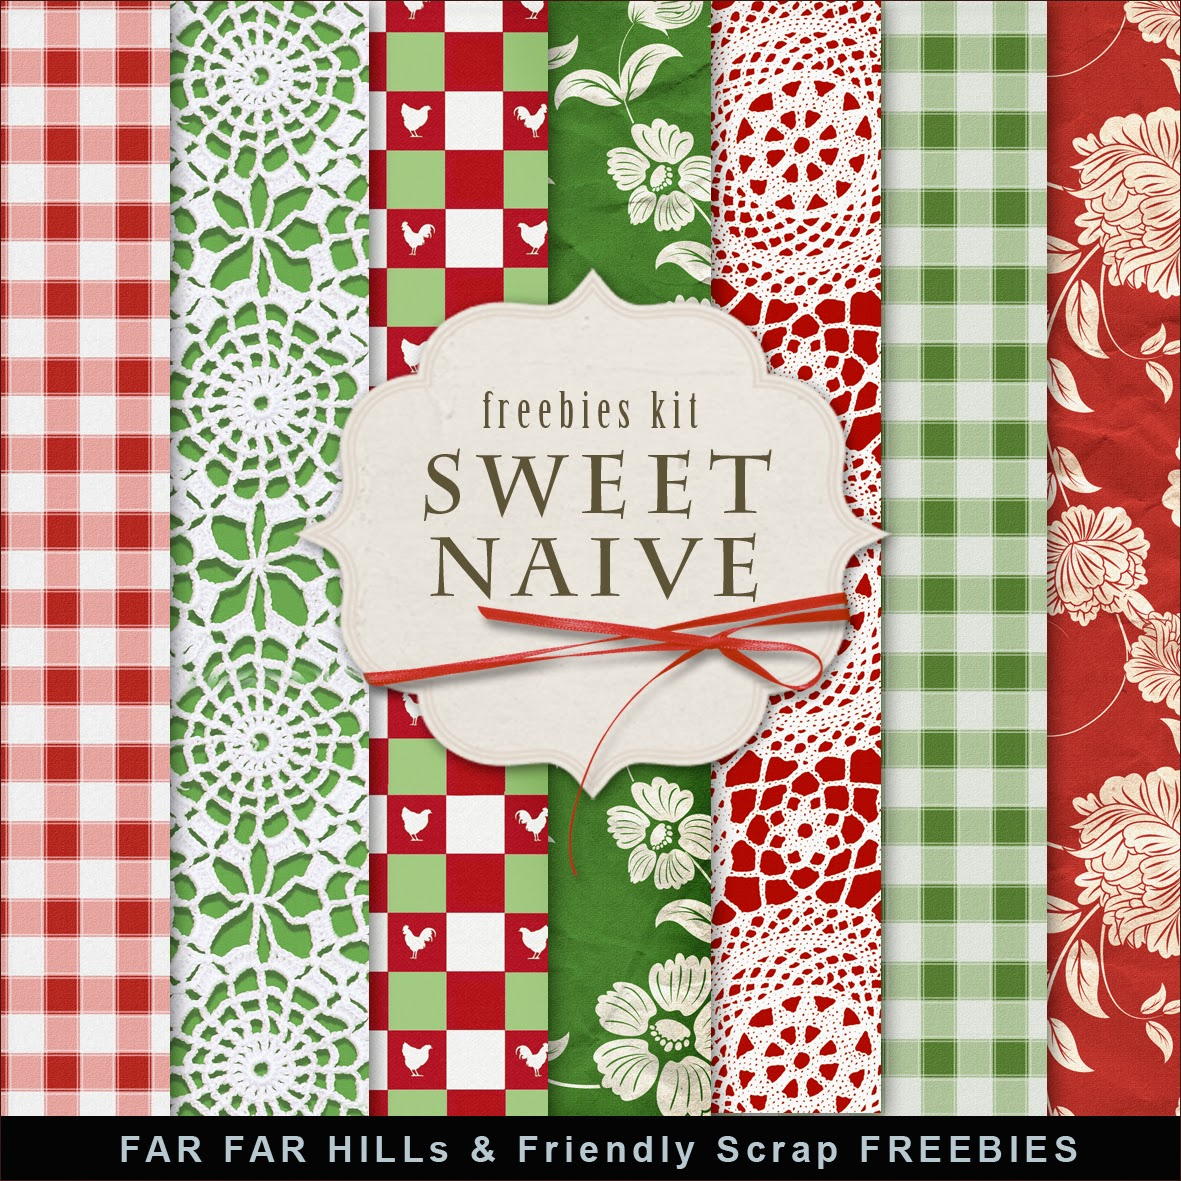 New Freebies Kit of Background - Sweet and Naive